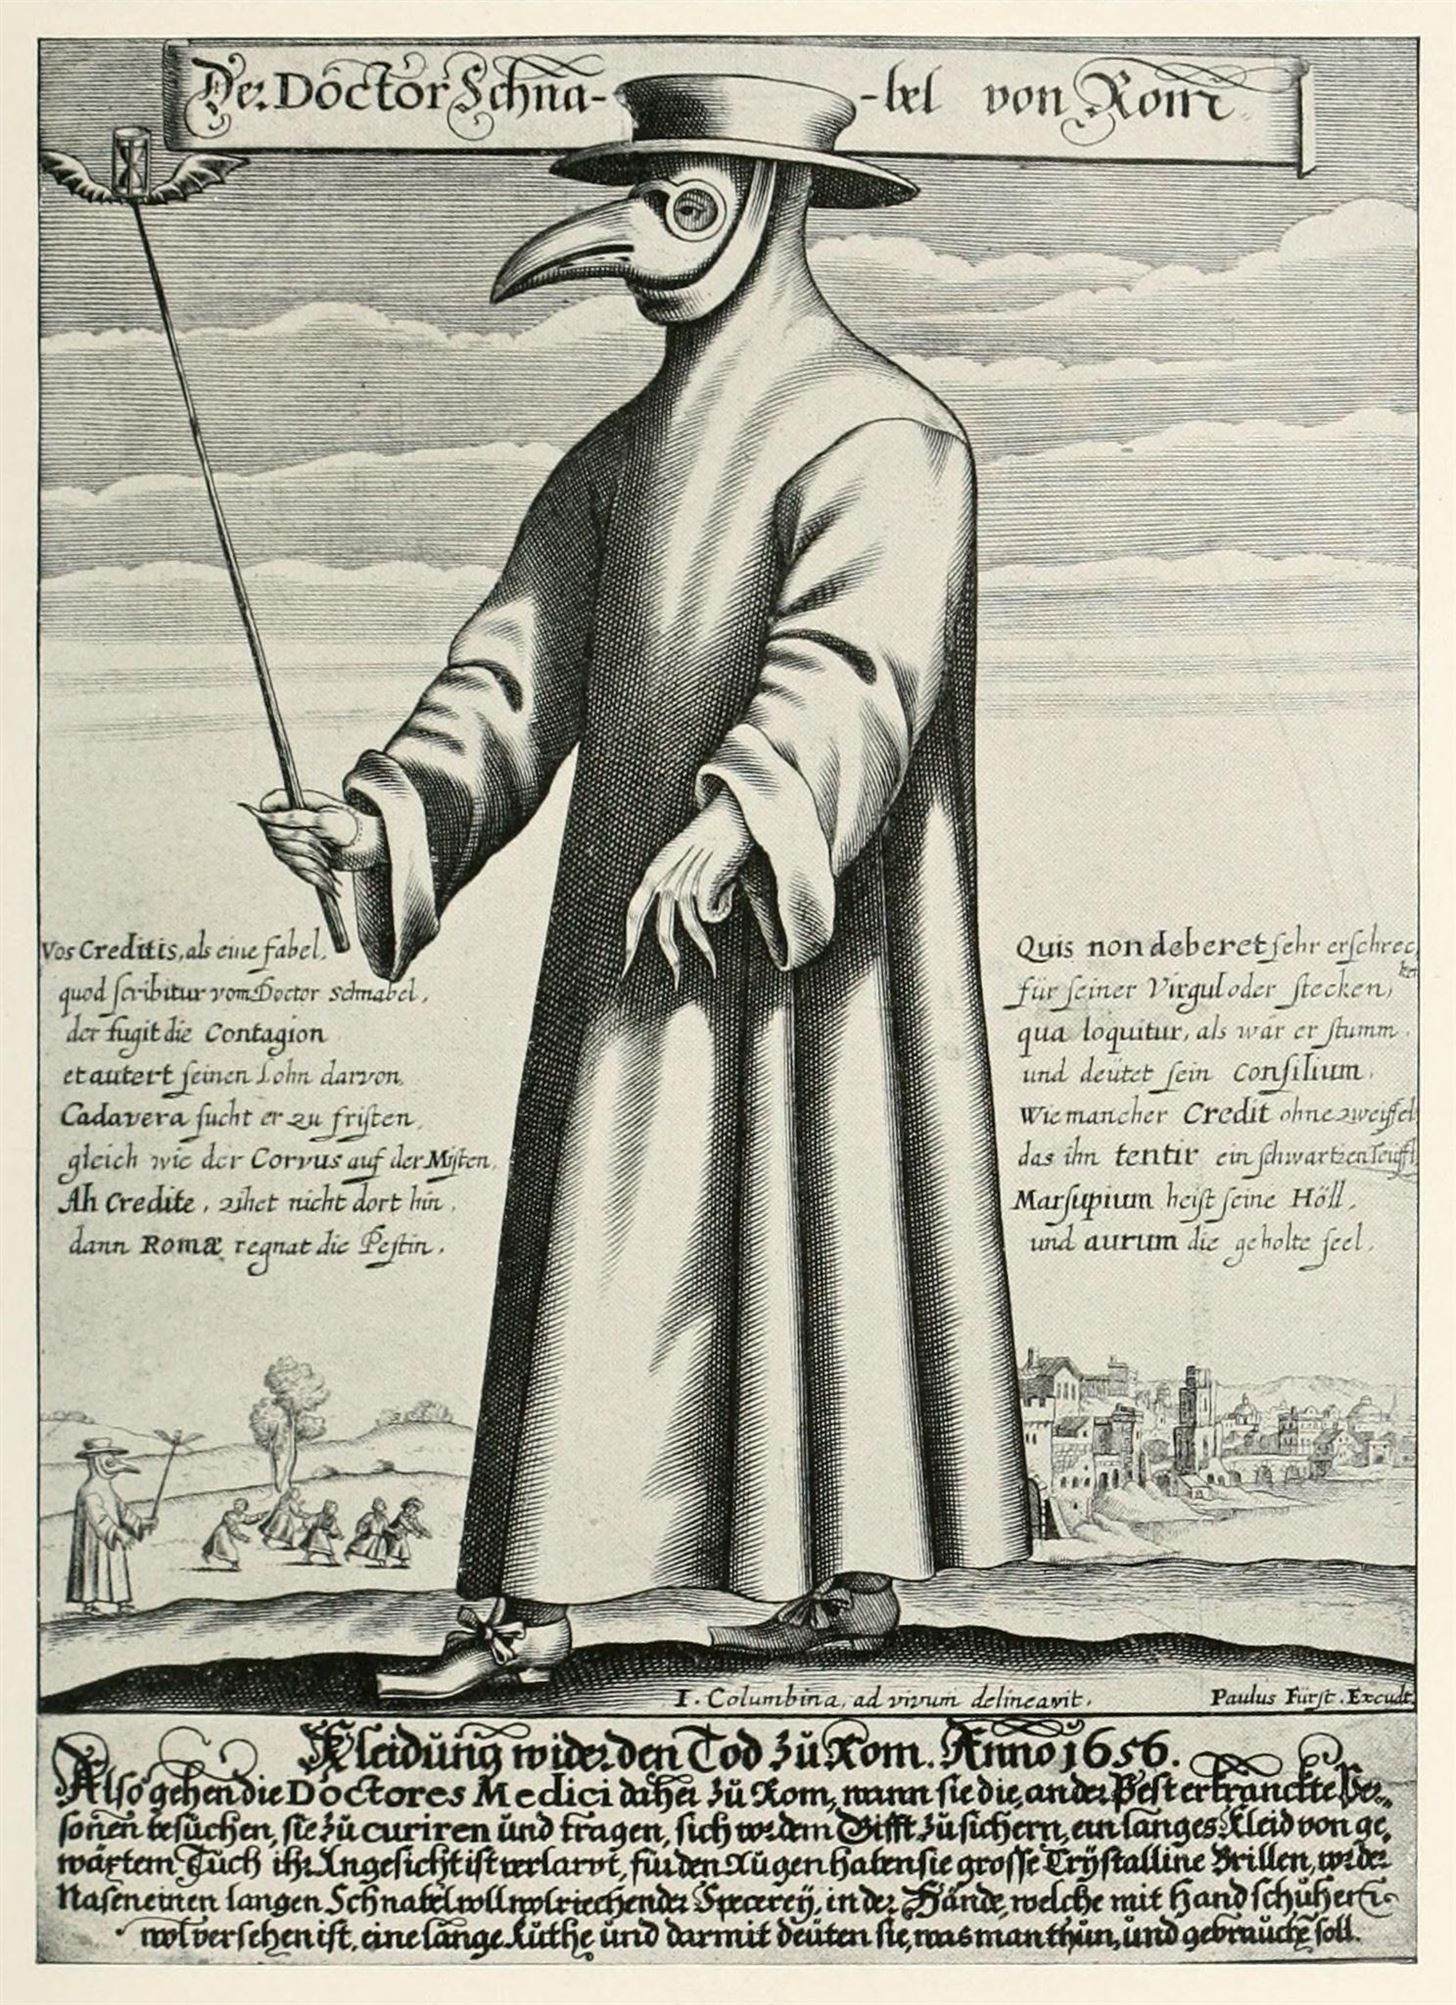 Image of the wordrobe worn by doctors attending to plague victims.